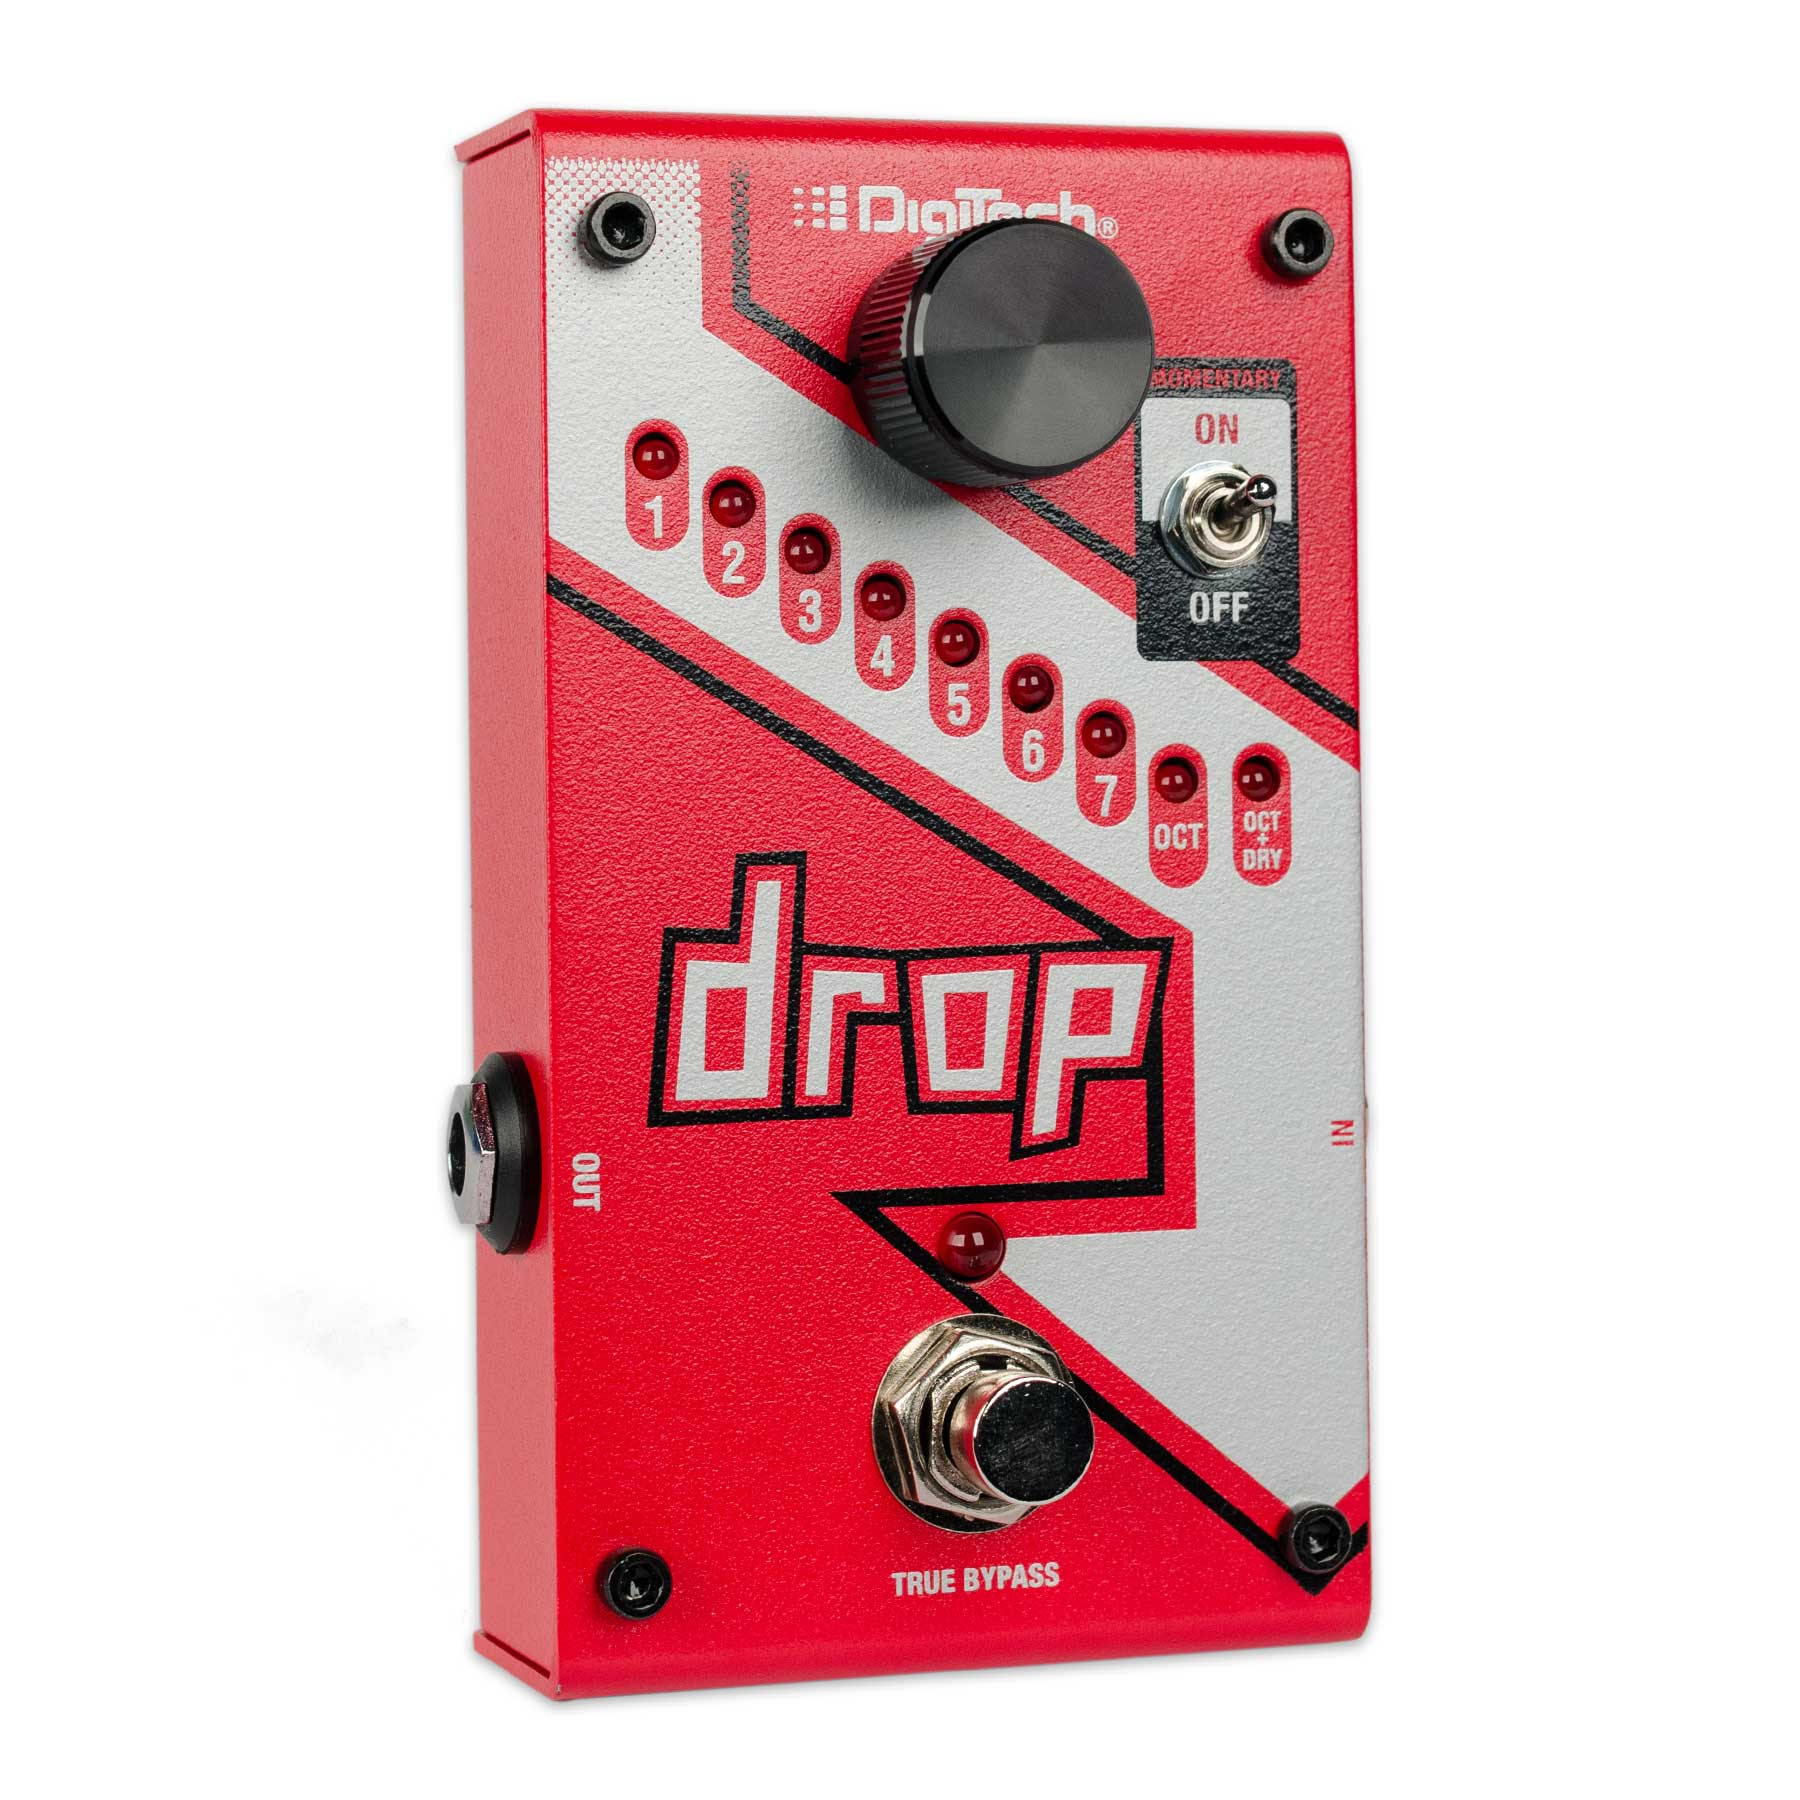 USED DIGITECH DROP PITCH SHIFTER WITH BOX